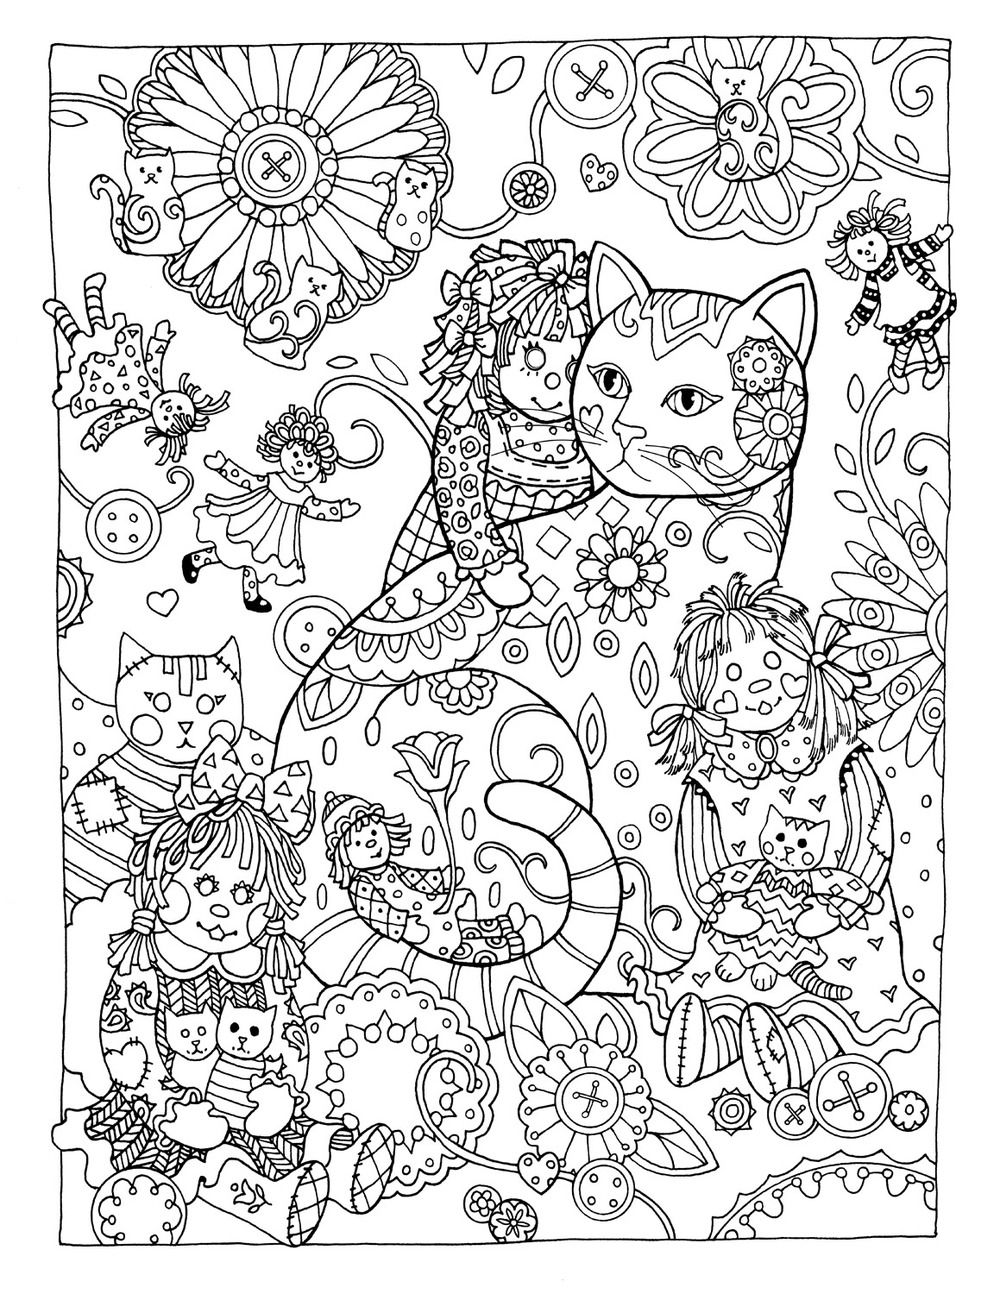 Childrens coloring sheet of a rag doll - Creative Cats Colouring Book Rag Dolls By Marjorie Sarnat